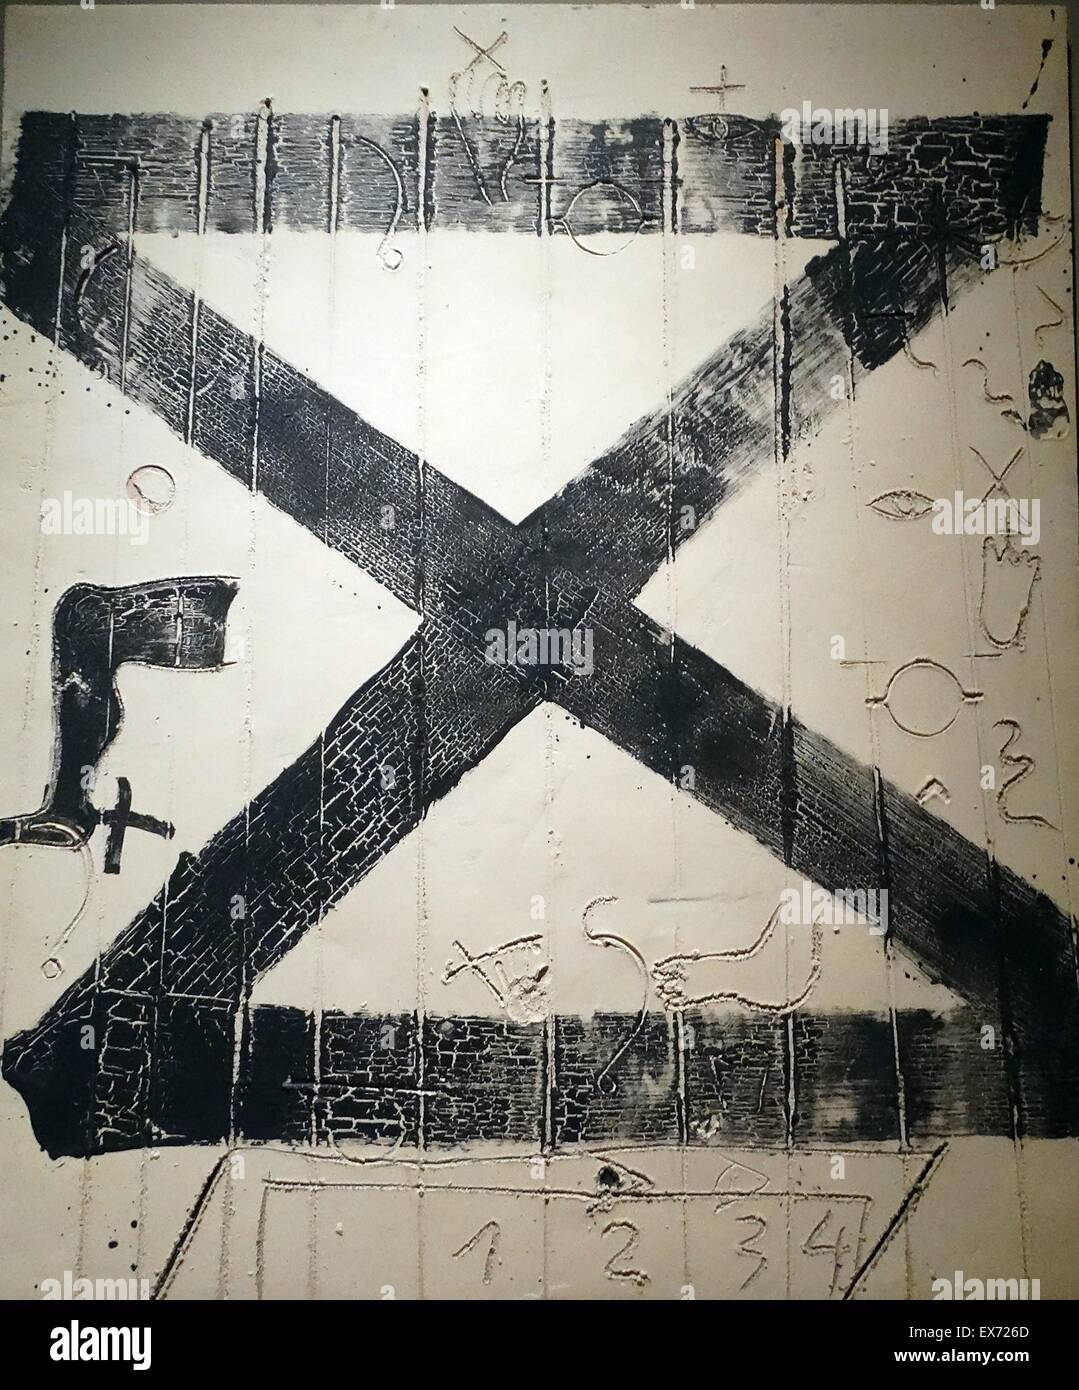 Hieroglyphics 1994 by Antoni Tàpies (1923-2012). Mixed materials on wood - Stock Image